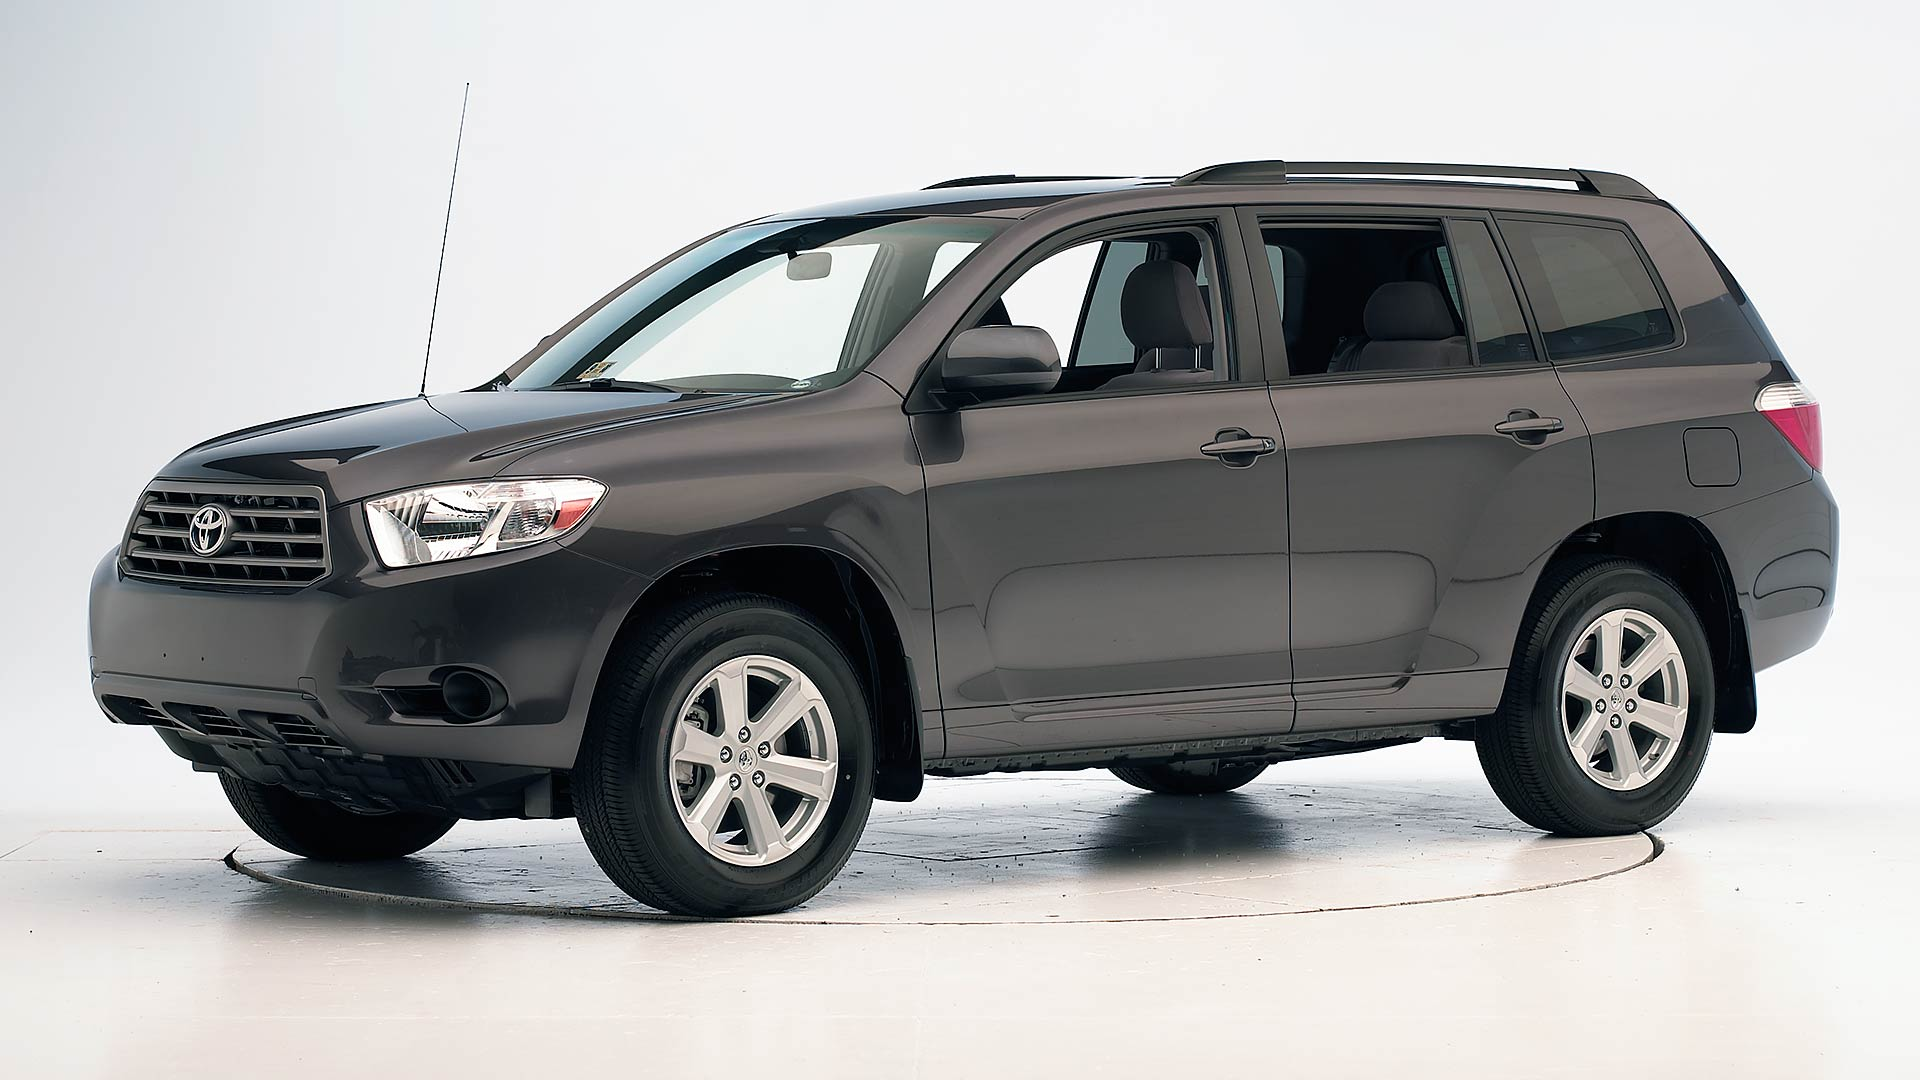 2010 Toyota Highlander 4-door SUV